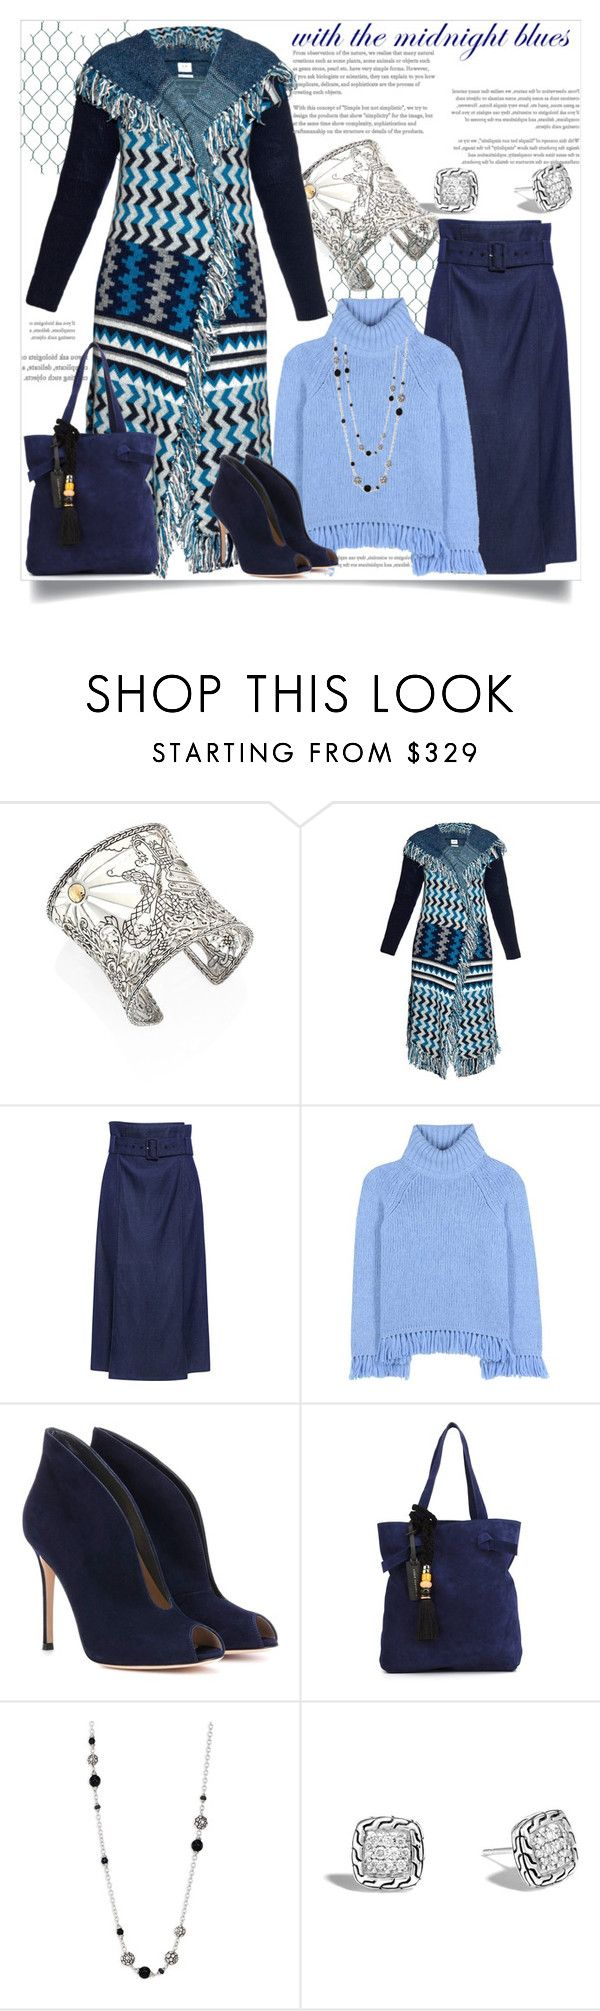 """Midnight Blues"" by helenaymangual ❤ liked on Polyvore featuring John Hardy, Banjo & Matilda, TIBI, Tory Burch, Gianvito Rossi and Lizzie Fortunato Jewels"